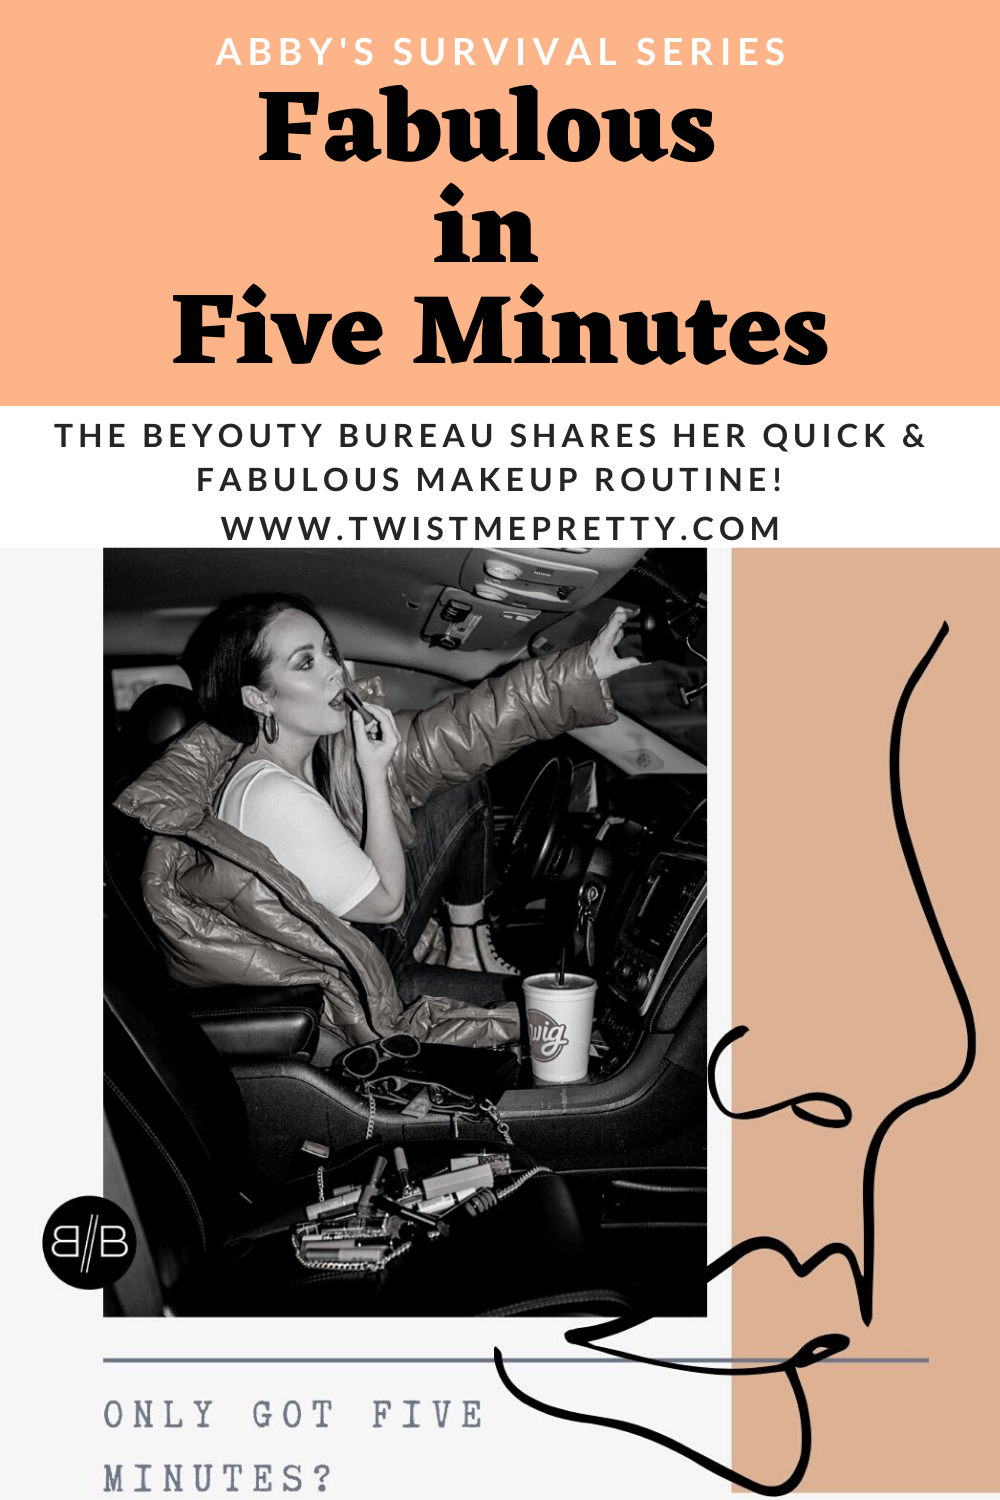 Abby's Survival Series: Fabulous in Five Minutes. The BeYouty Bureau shares her quick and fabulous makeup routine! www.TwistMePretty.com